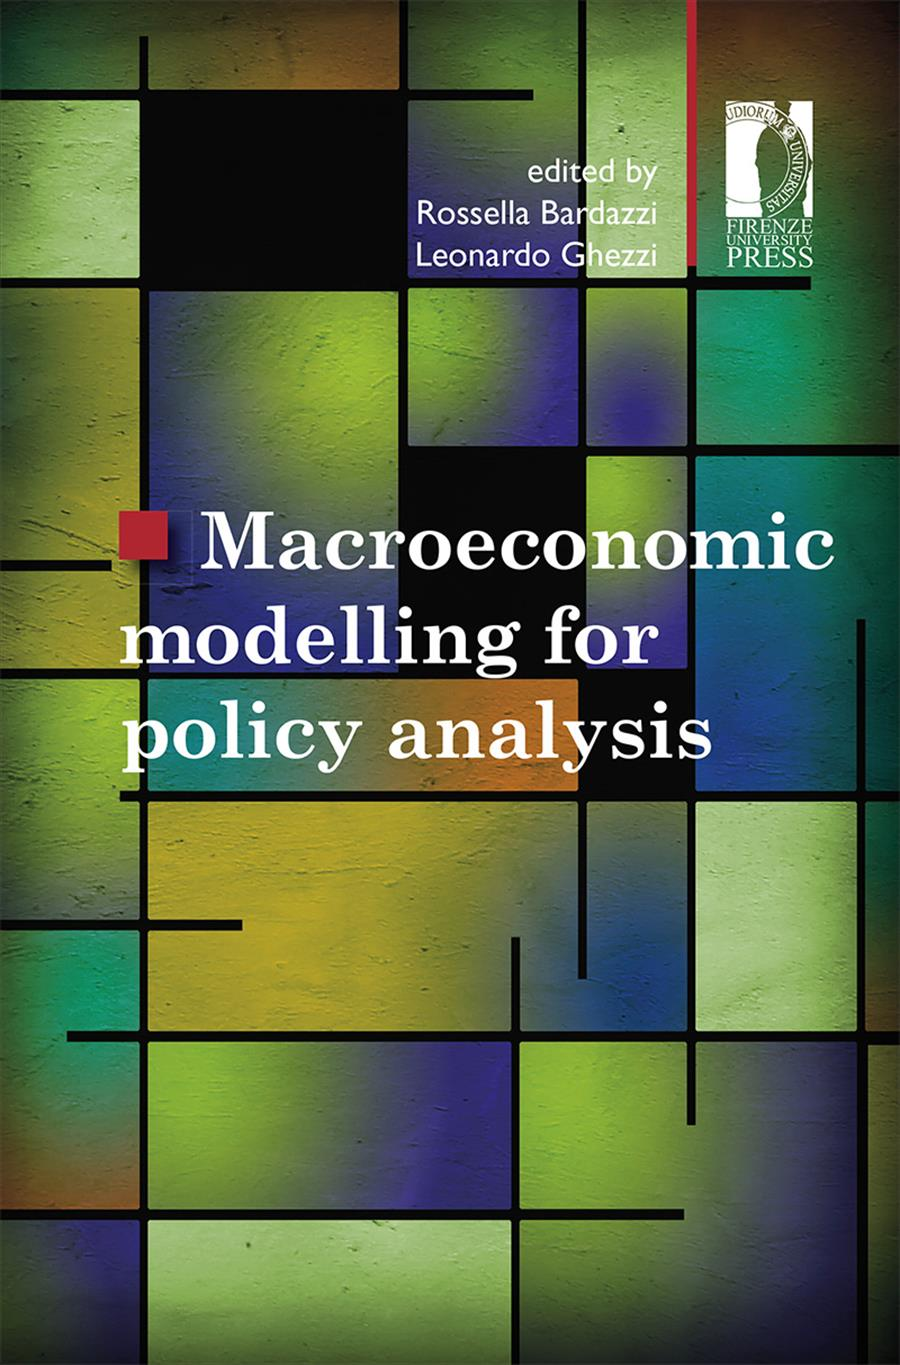 Macroeconomic modelling for policy analysis